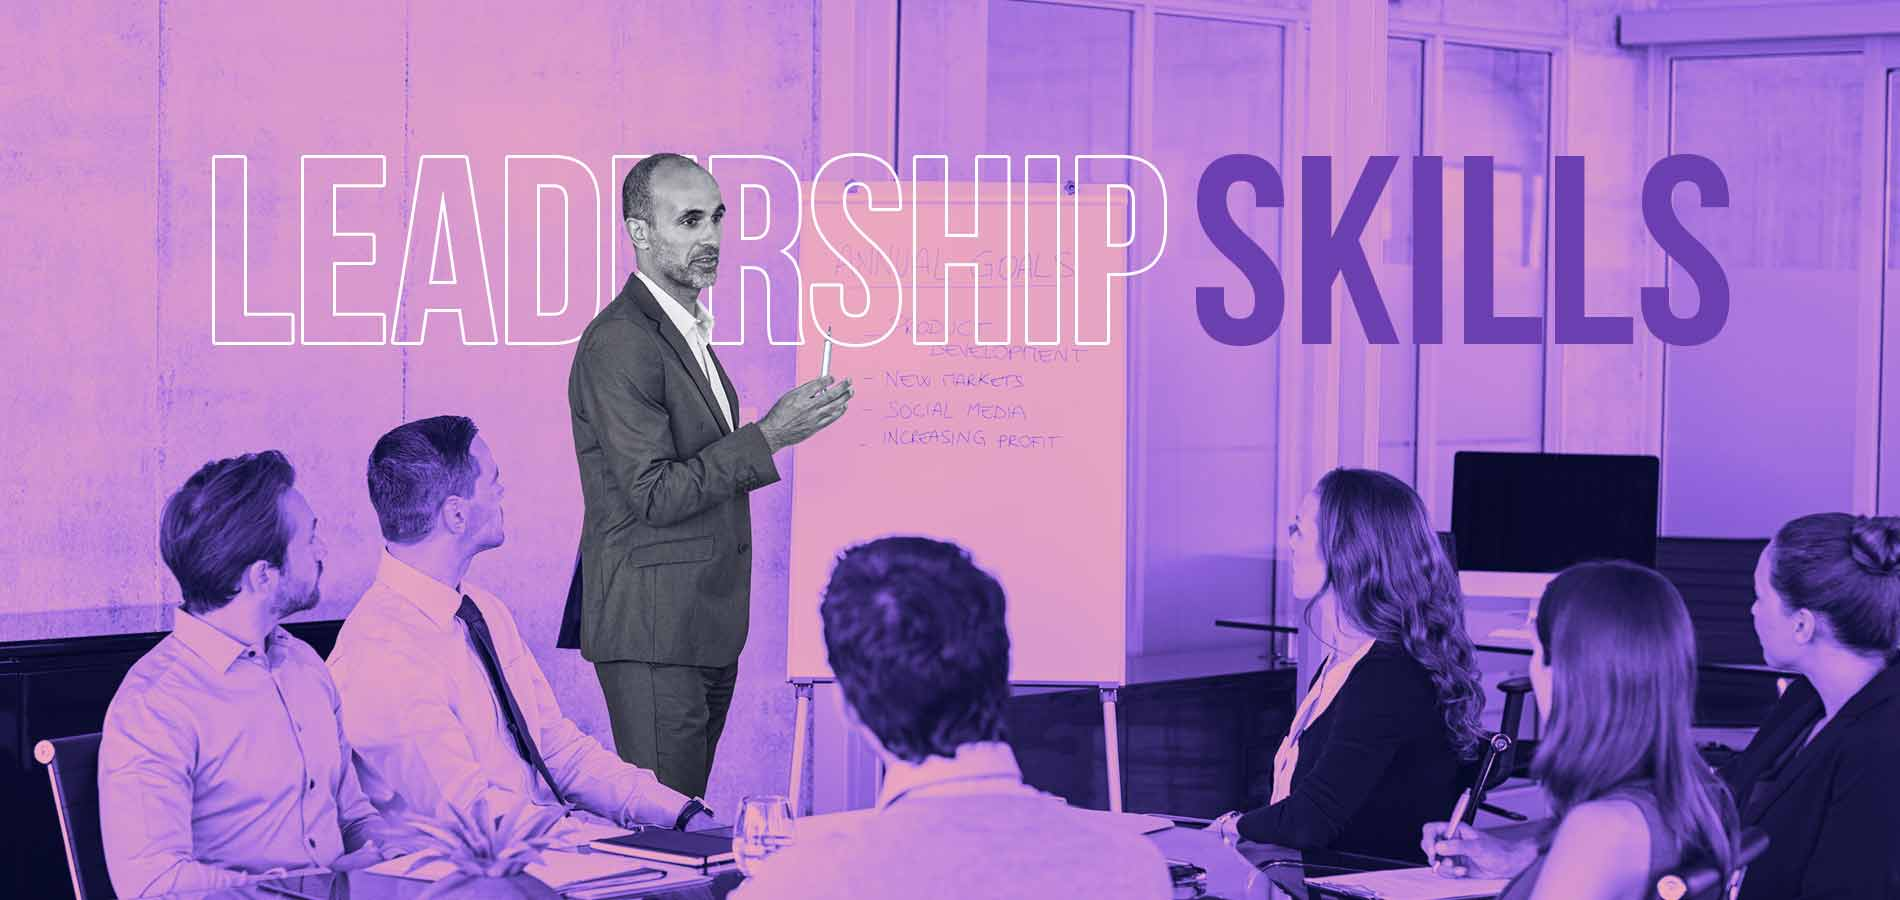 How to improve leadership skills in business